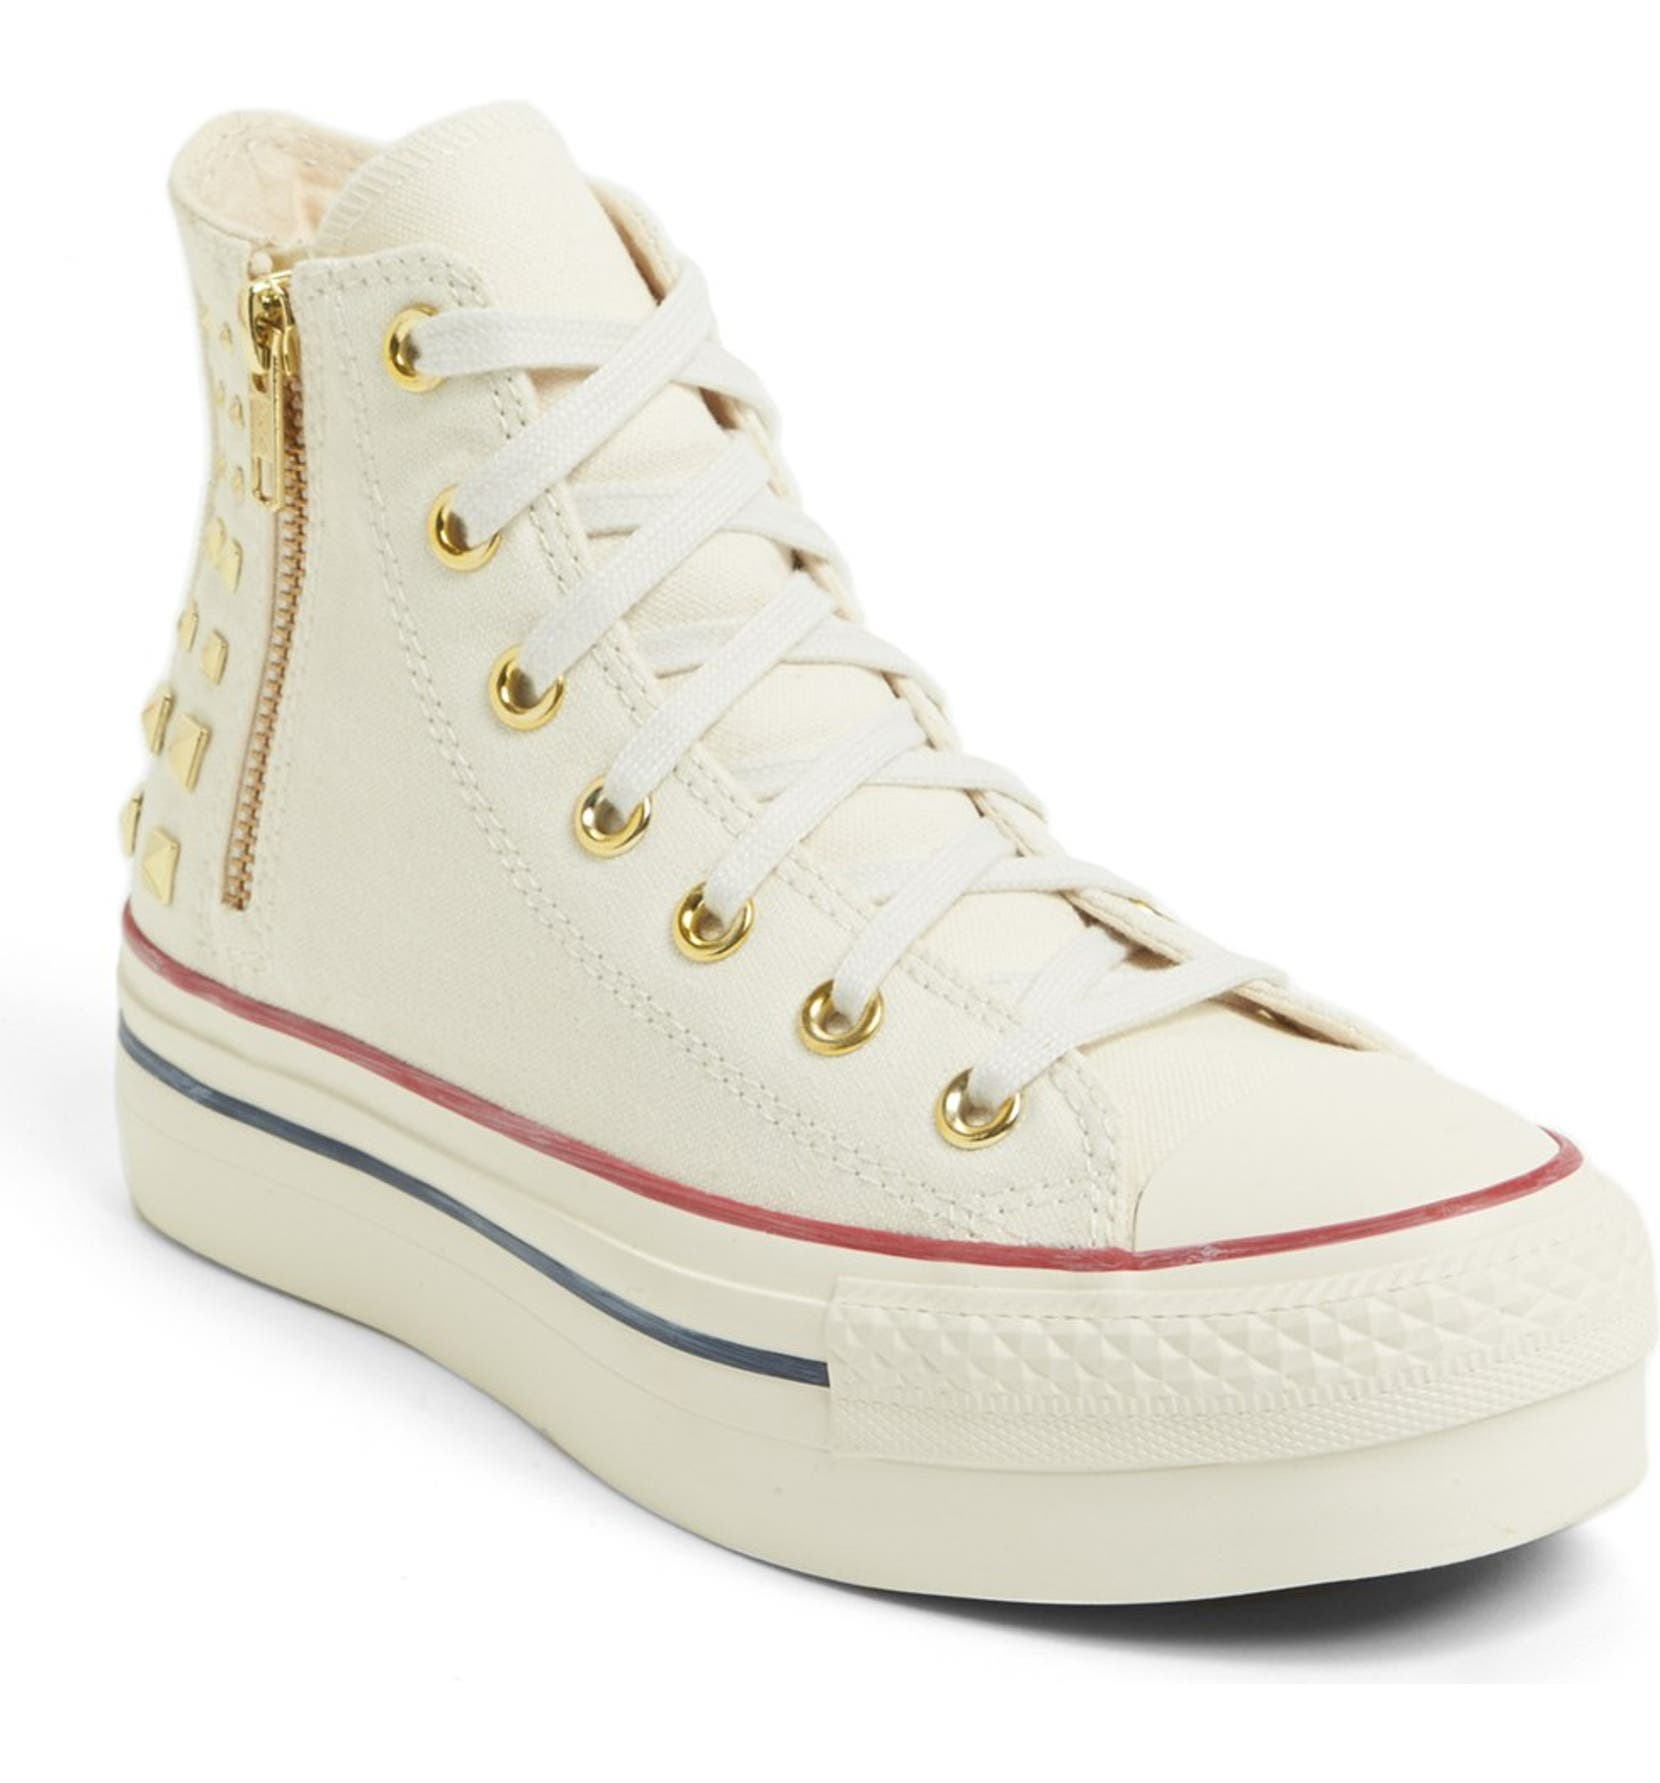 b42fbf61992 Converse Chuck Taylor® All Star® Platform High Top Sneaker (Women ...